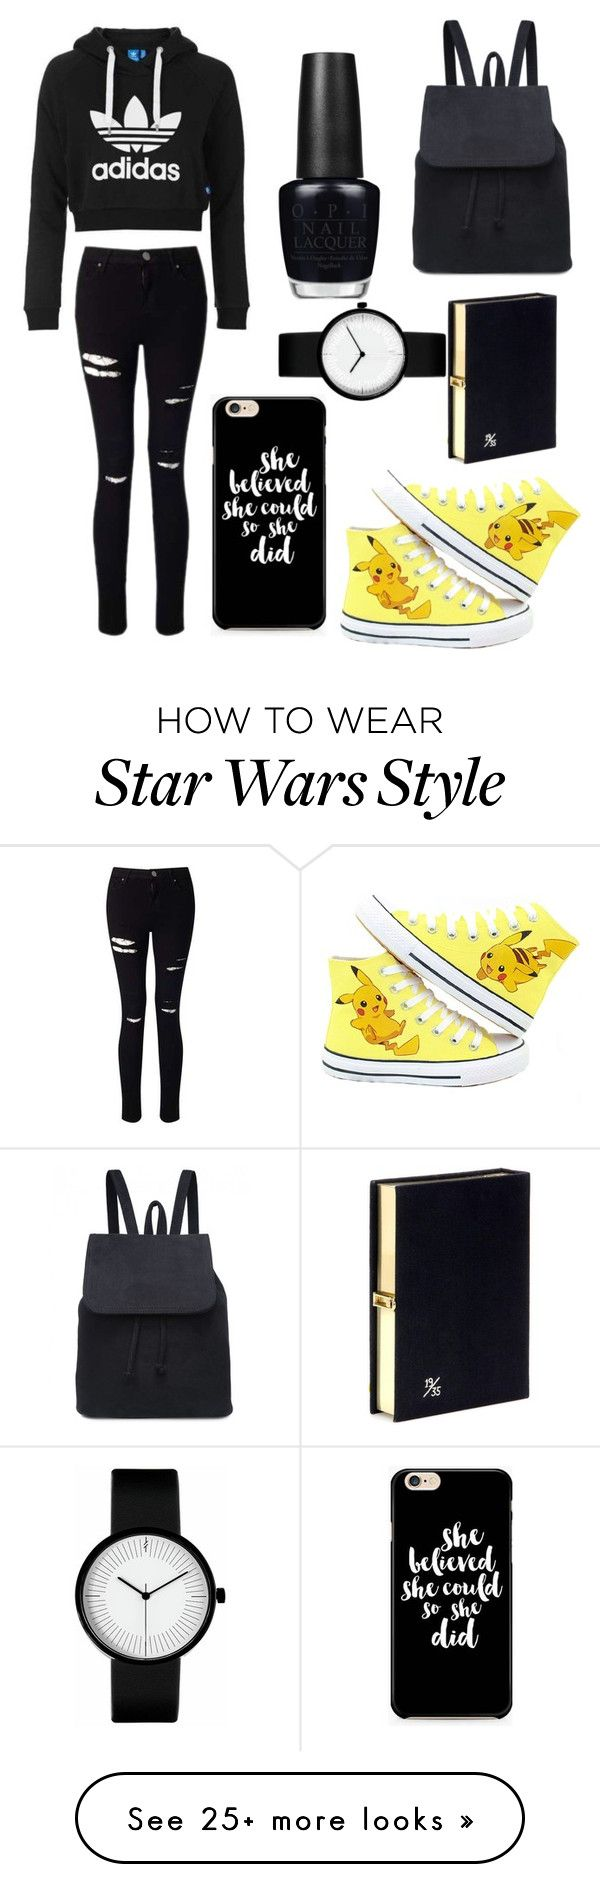 """black&Pikachu!!!"" by theteress on Polyvore featuring adidas Originals, Miss Selfridge, Olympia Le-Tan and OPI"